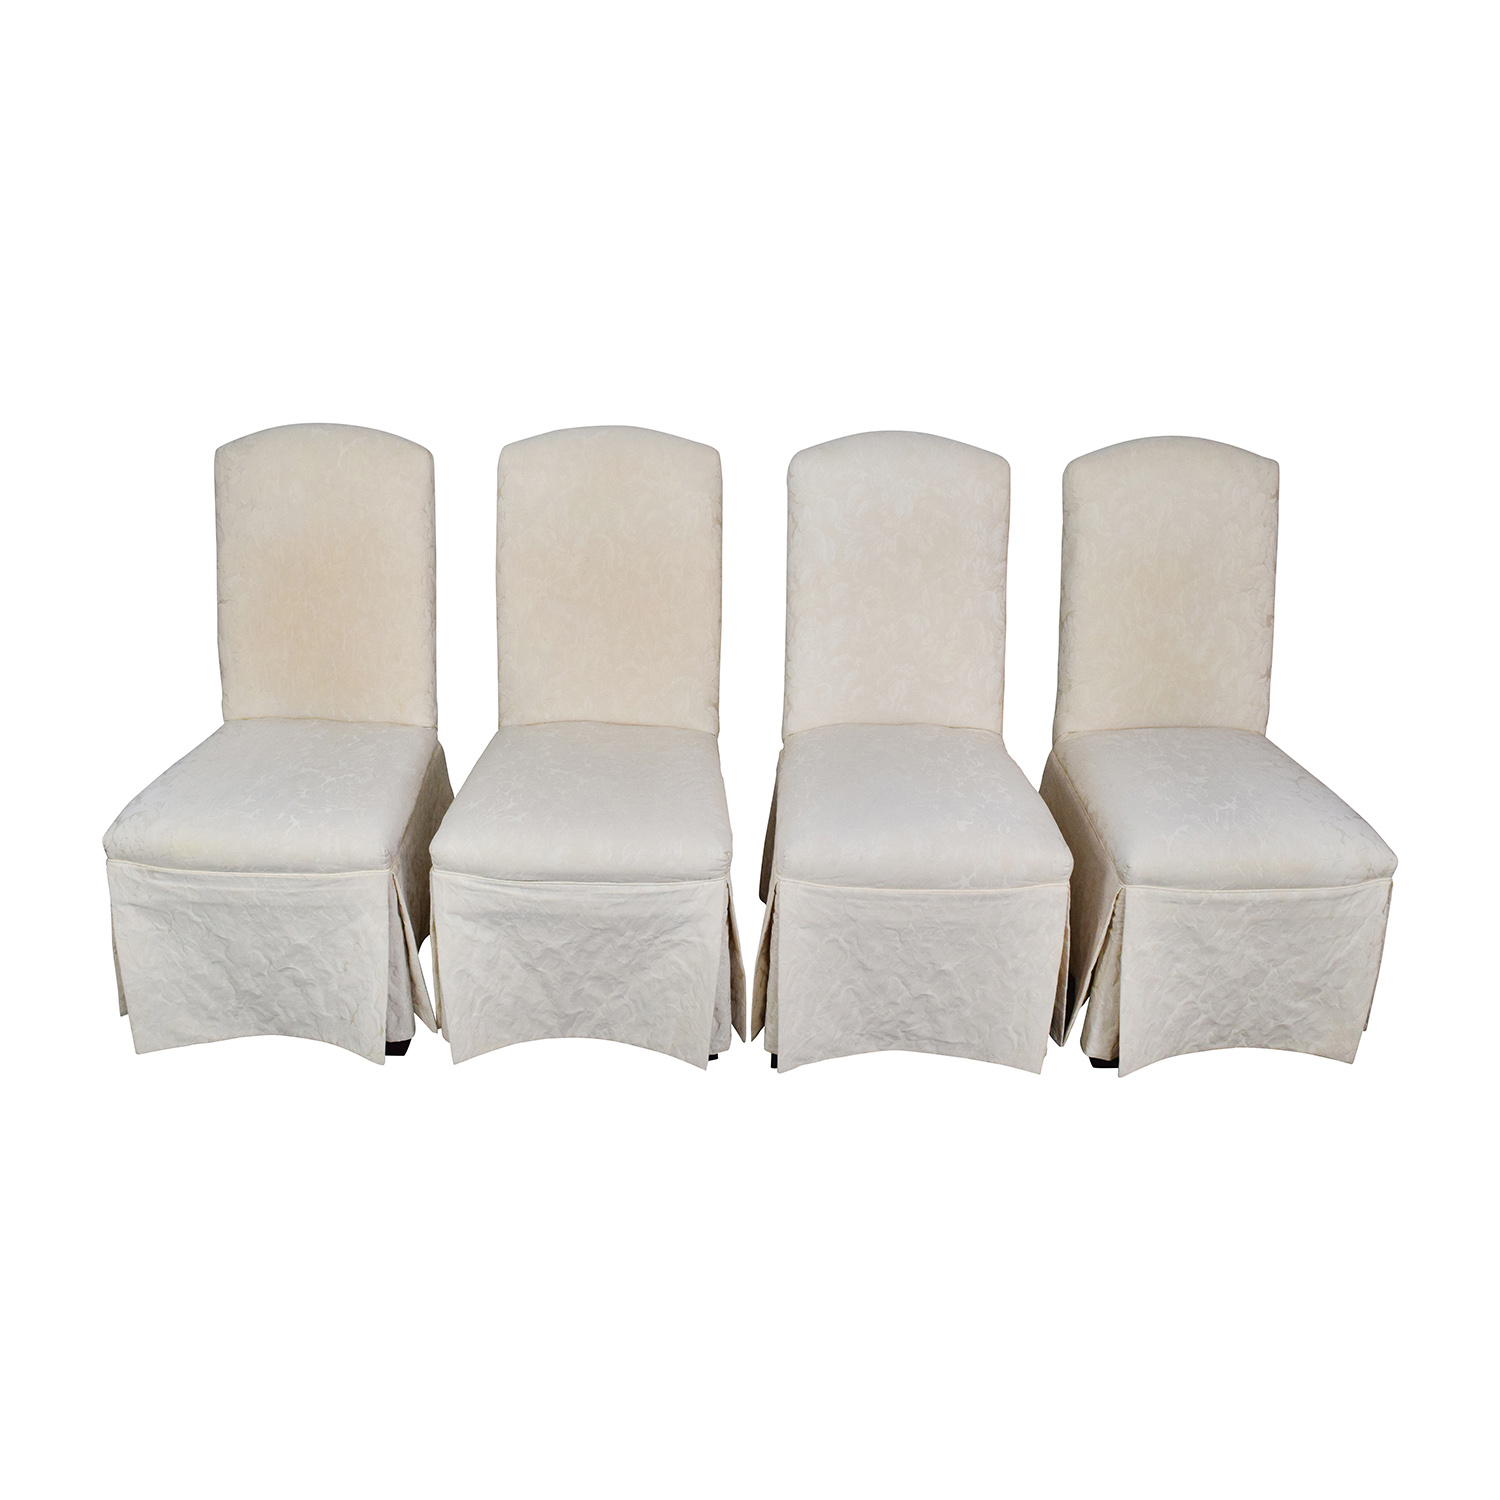 Upholstered Dining Room Chairs For Sale : thomasville ivory upholstered dining chairs used from chairs52.com size 1500 x 1500 jpeg 269kB